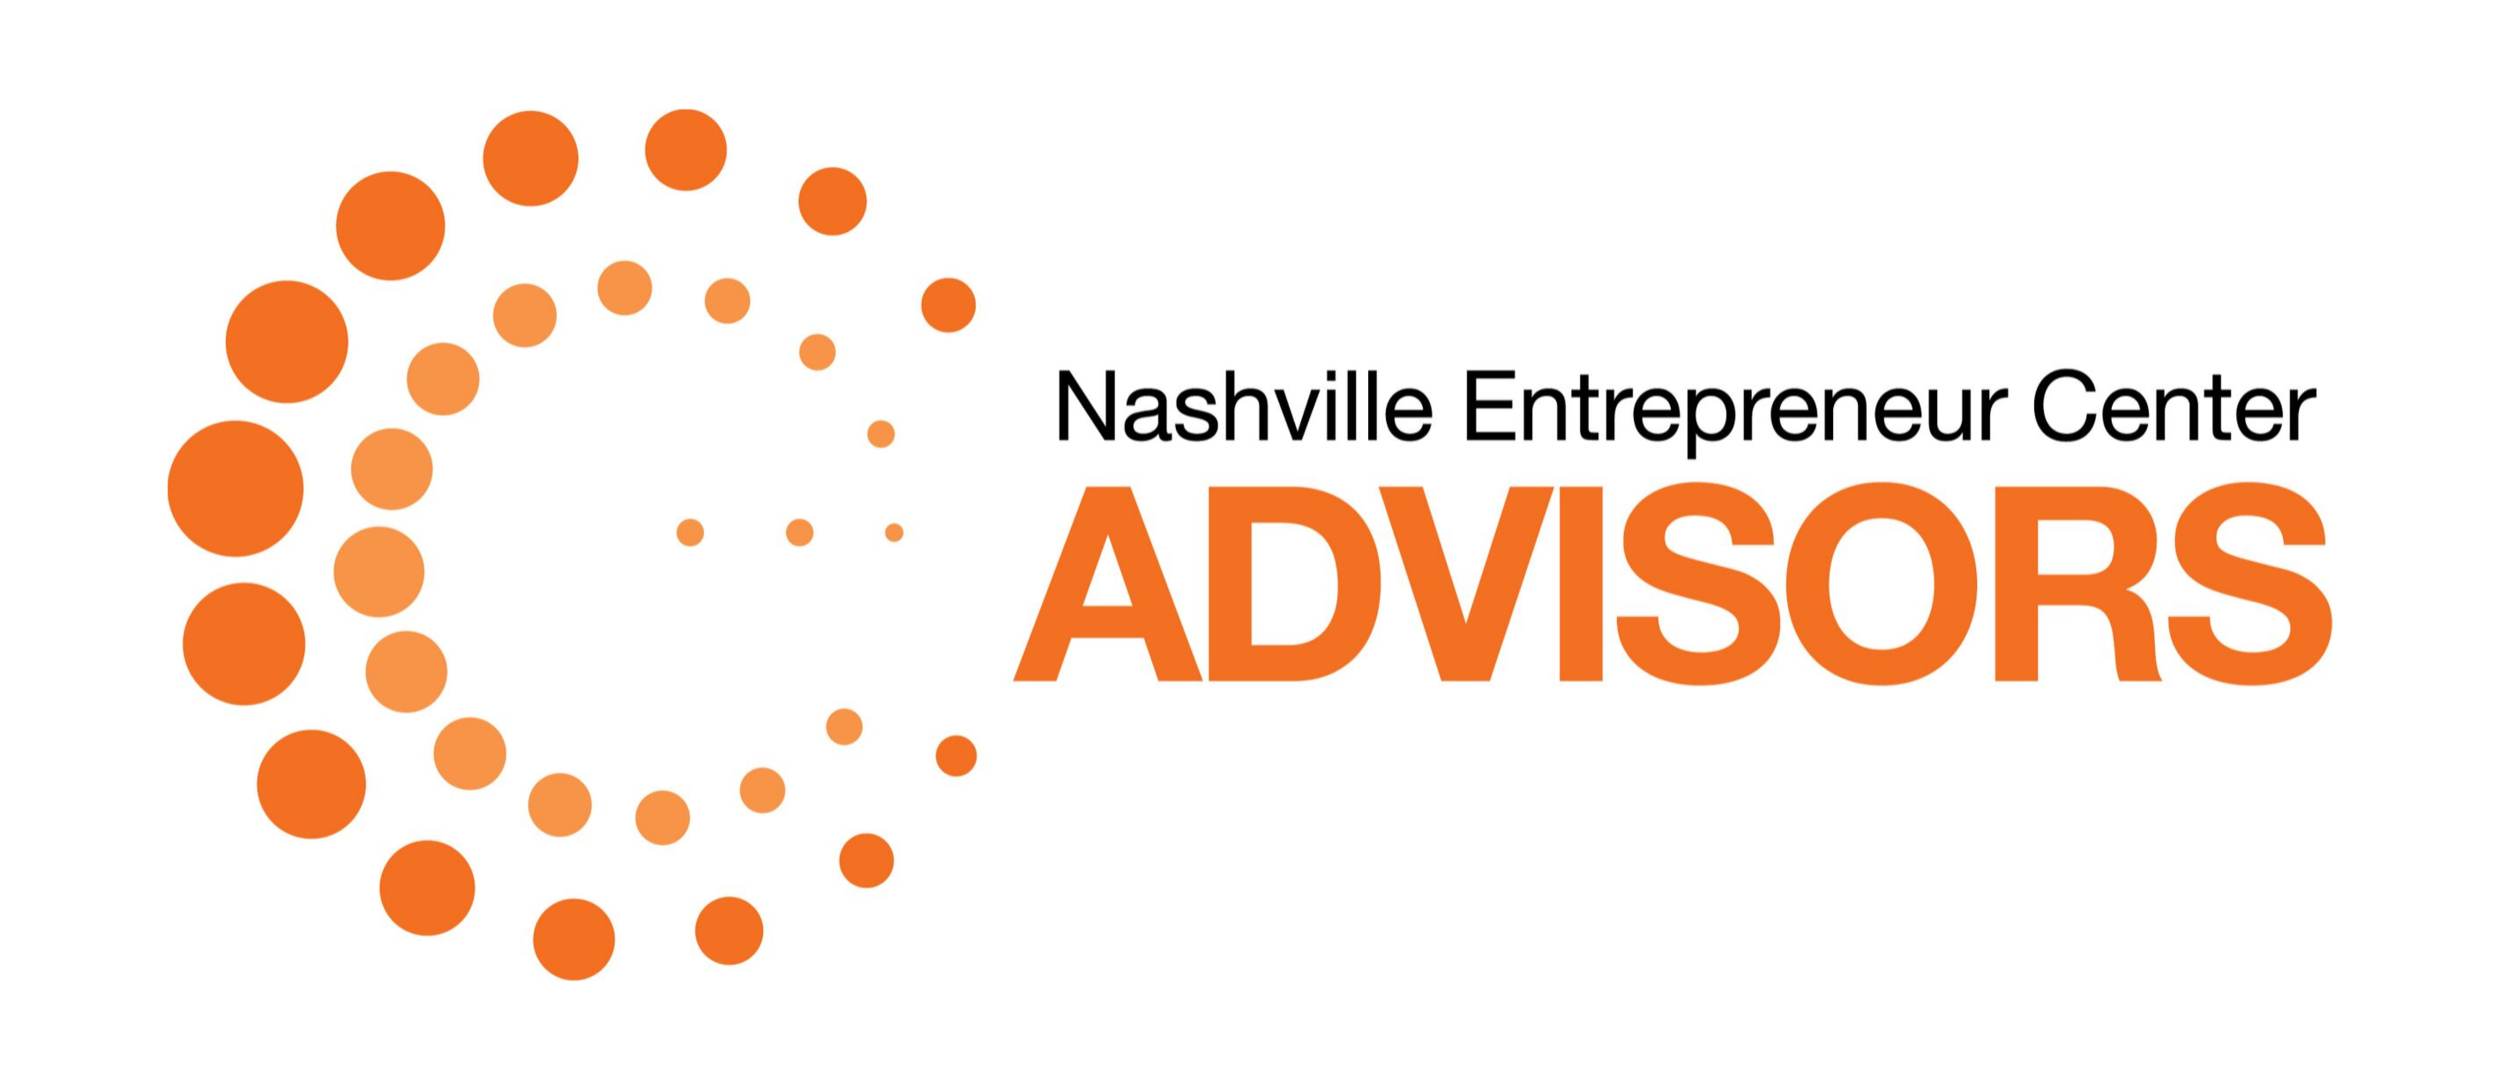 Access a 290+ person advisor network with expertise that will cut your learning curve in half.